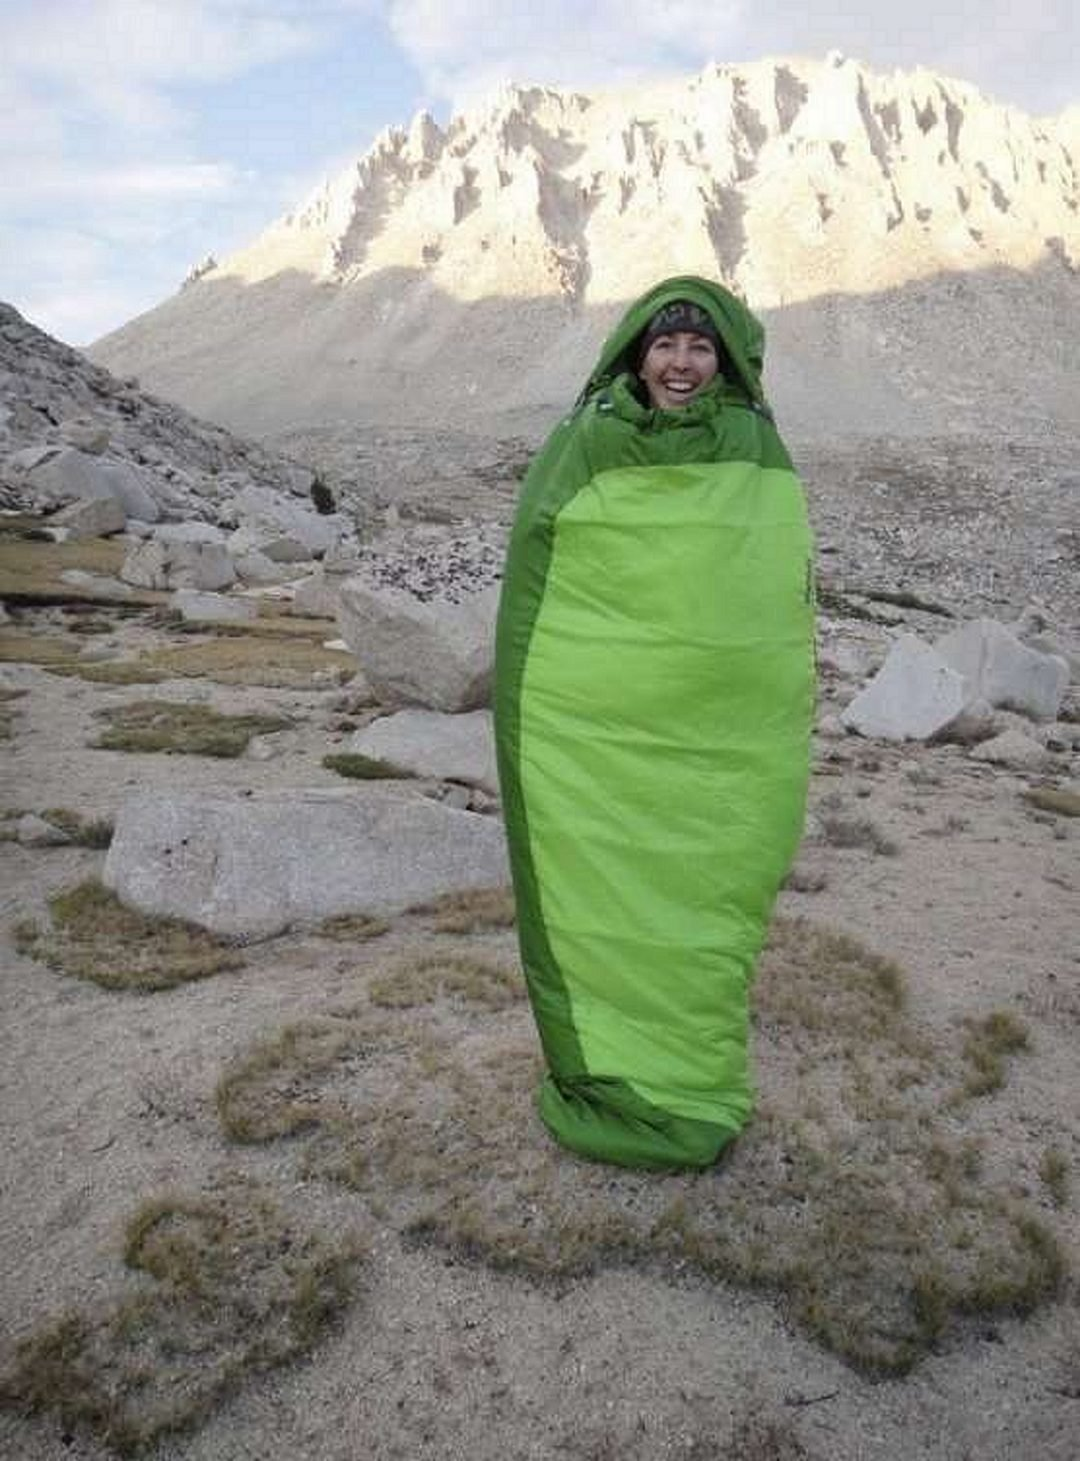 A woman in a Sleeping Bag